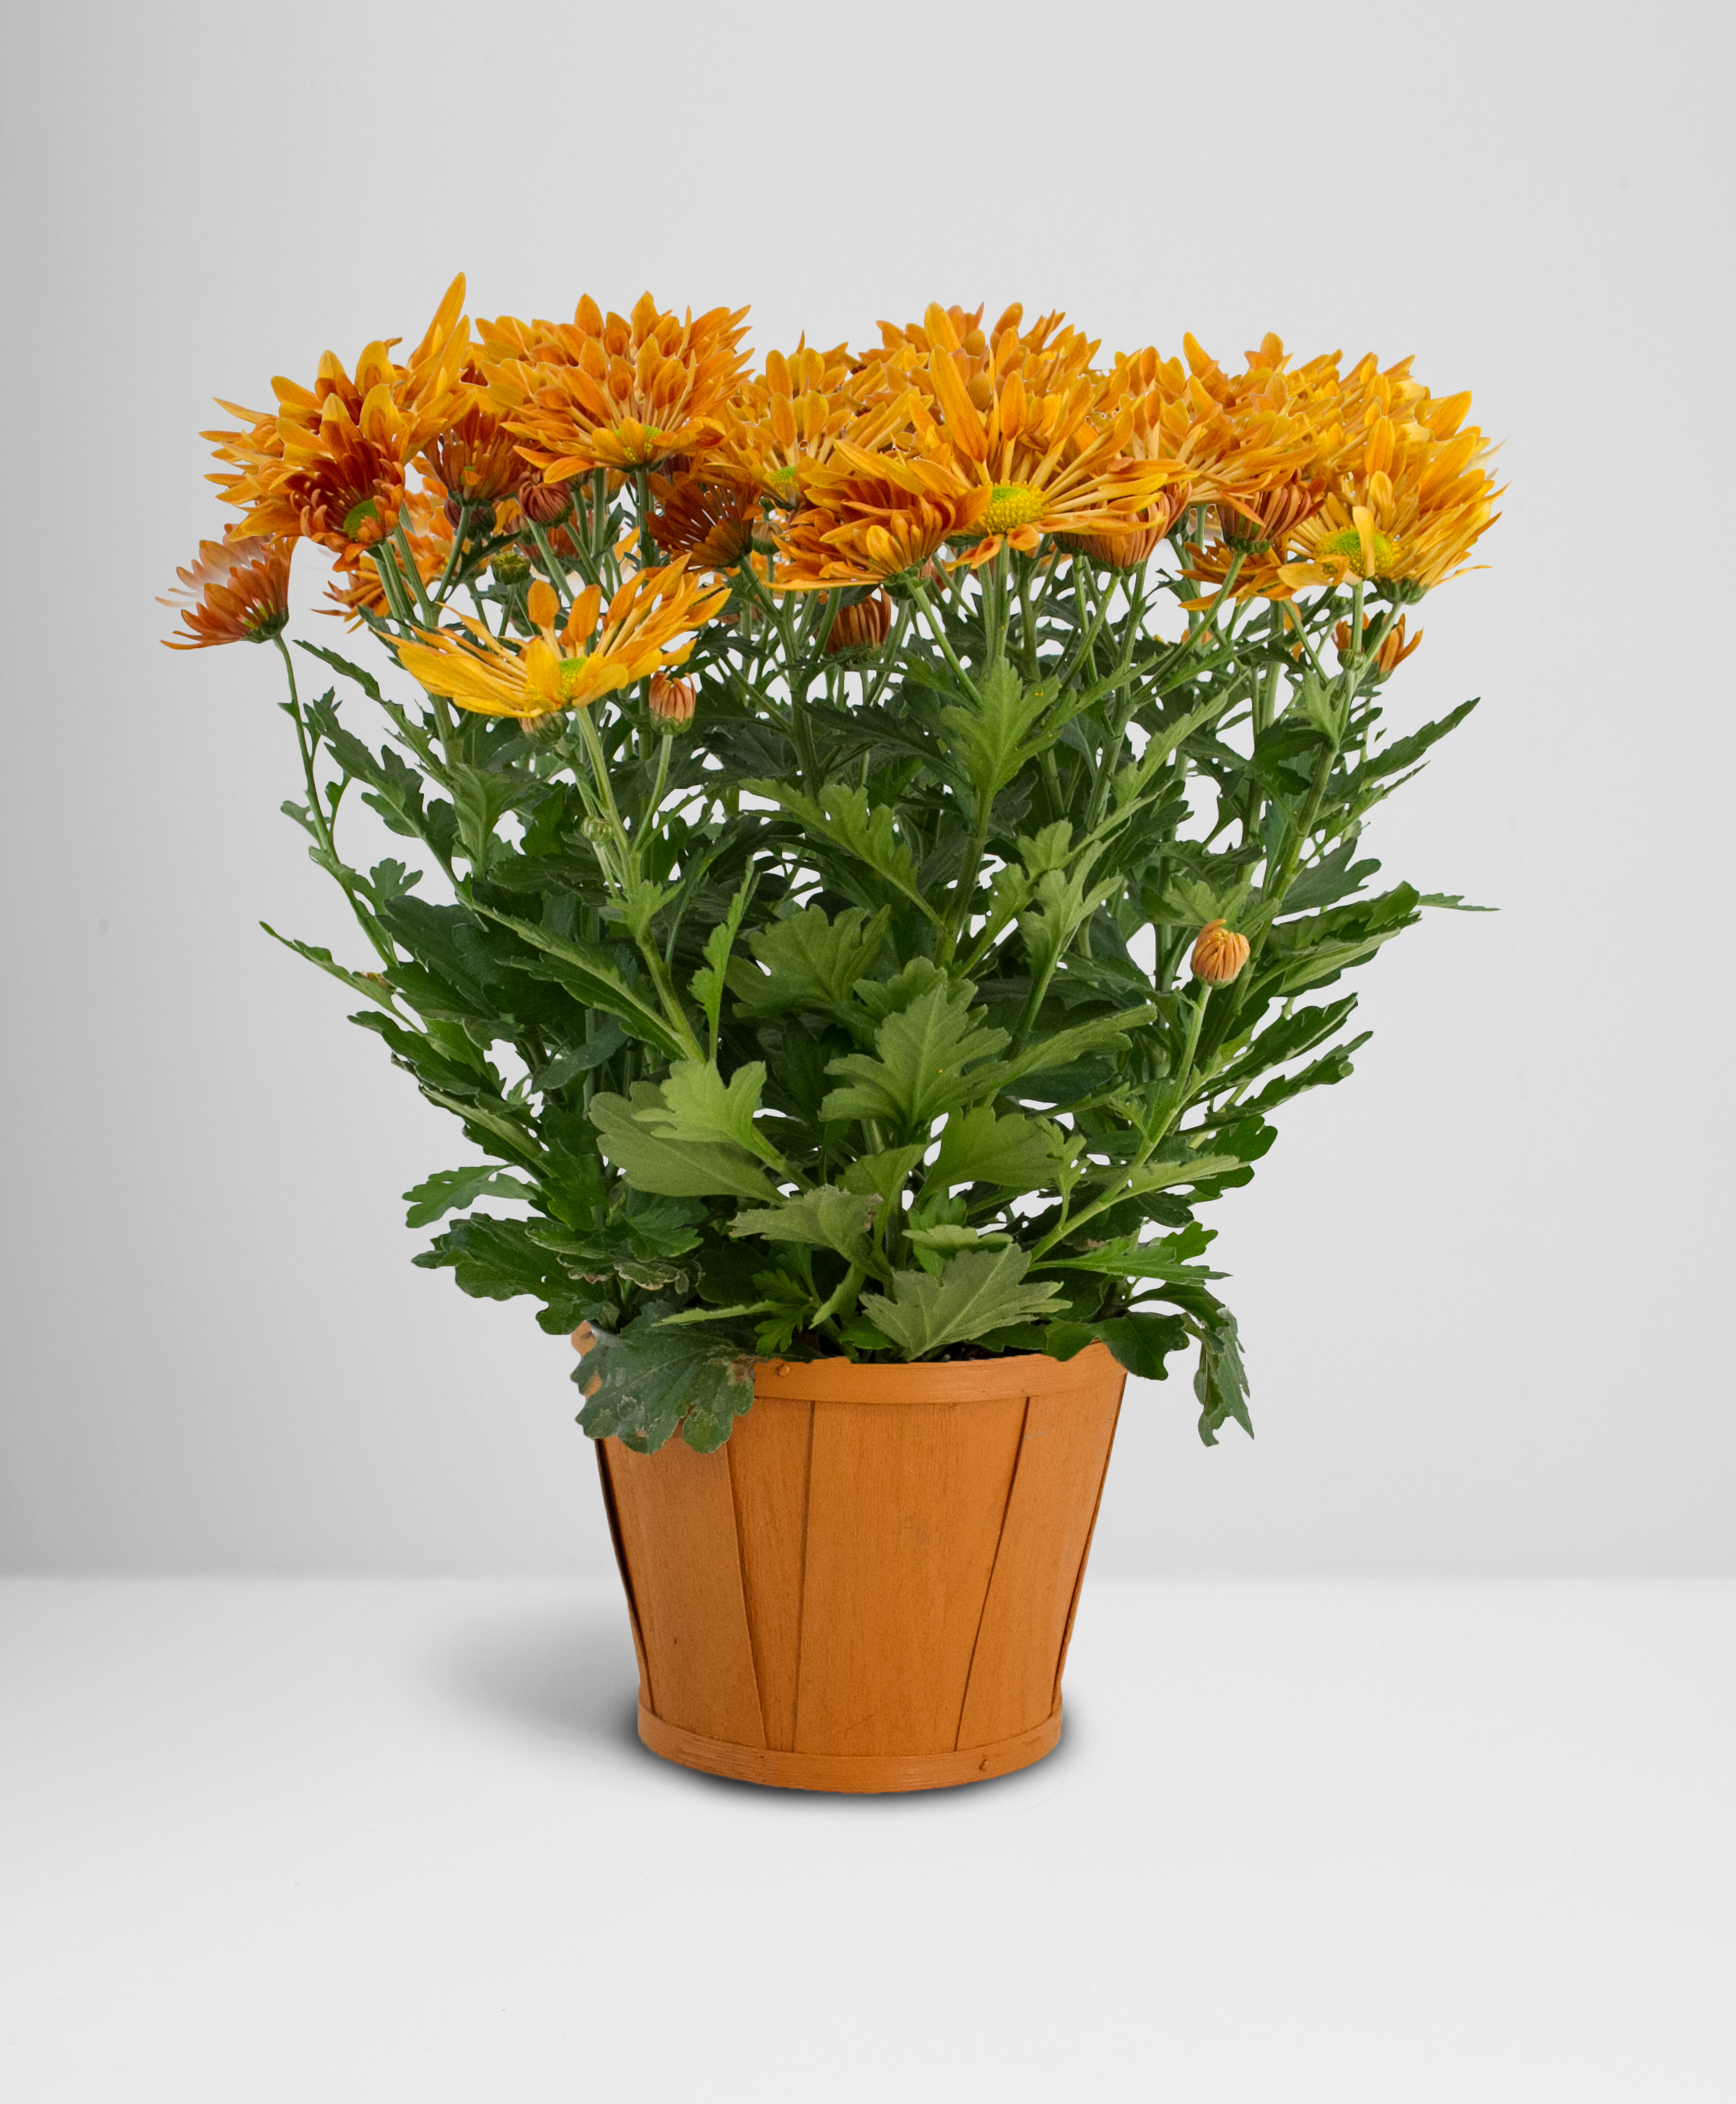 Potted Chrysanthemum in Wooden Upgrade